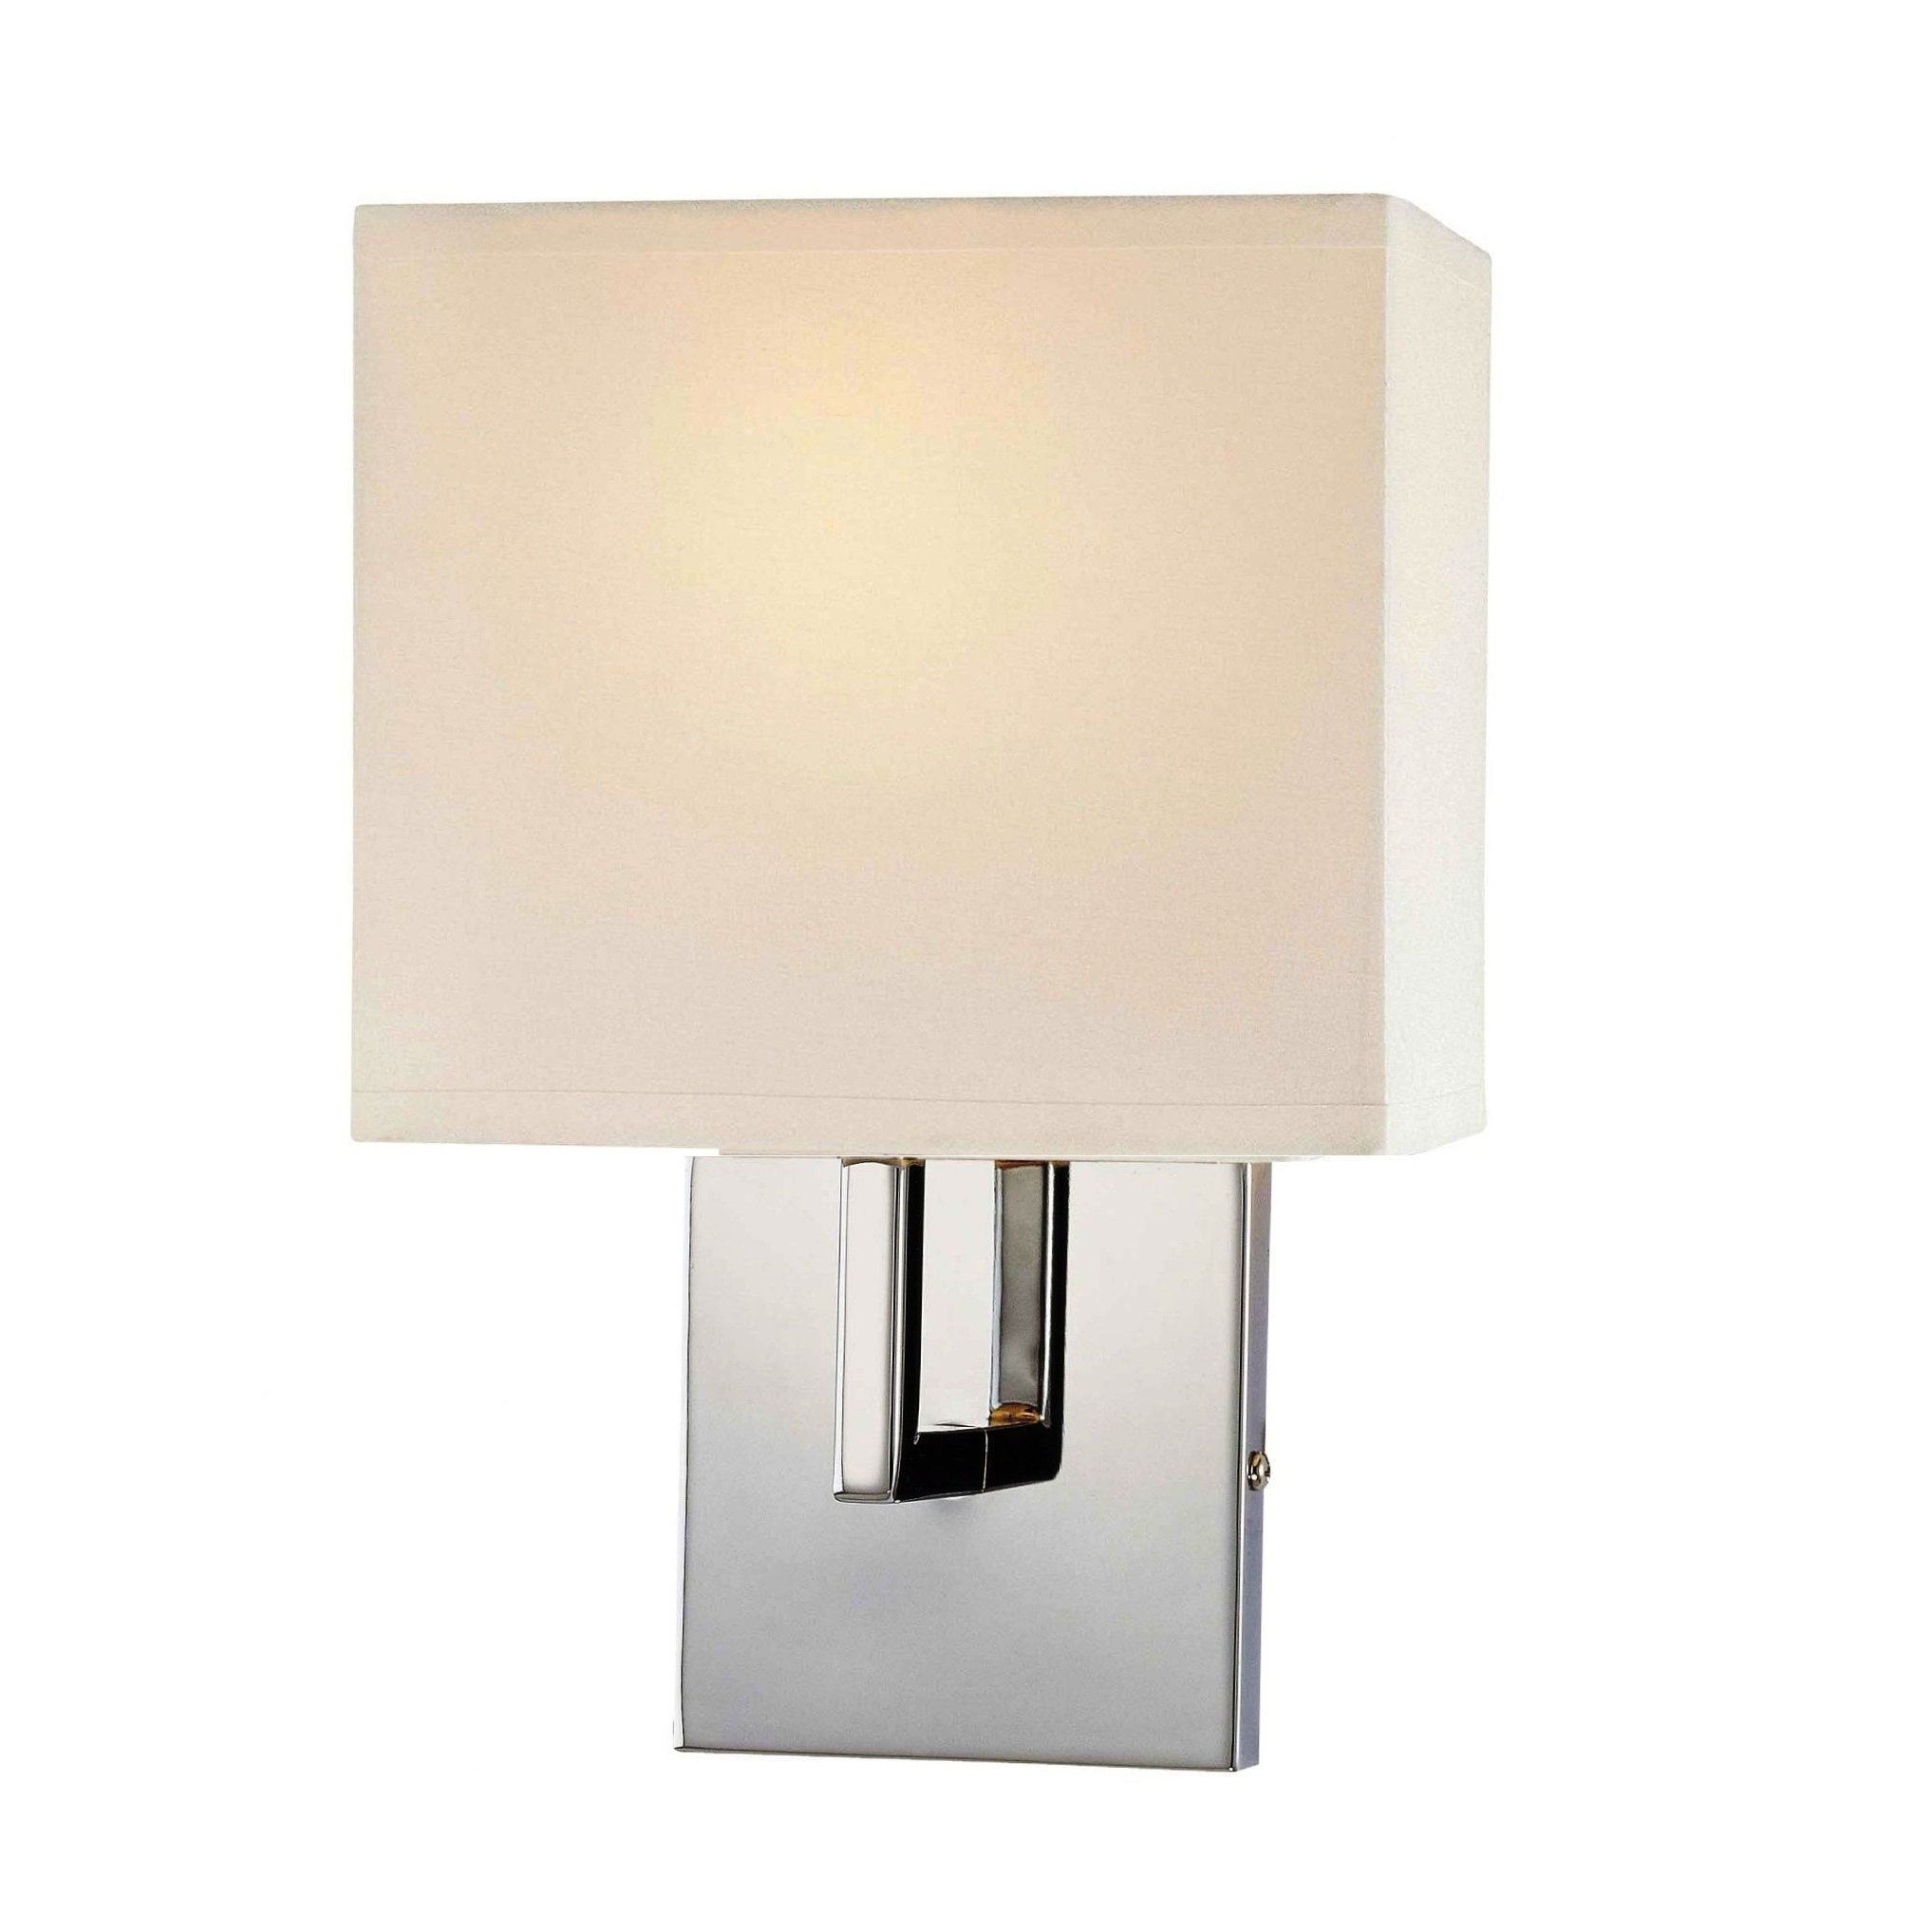 George Kovacs 1 Light Wall Sconce In Chrome l Brilliant Source Lighting